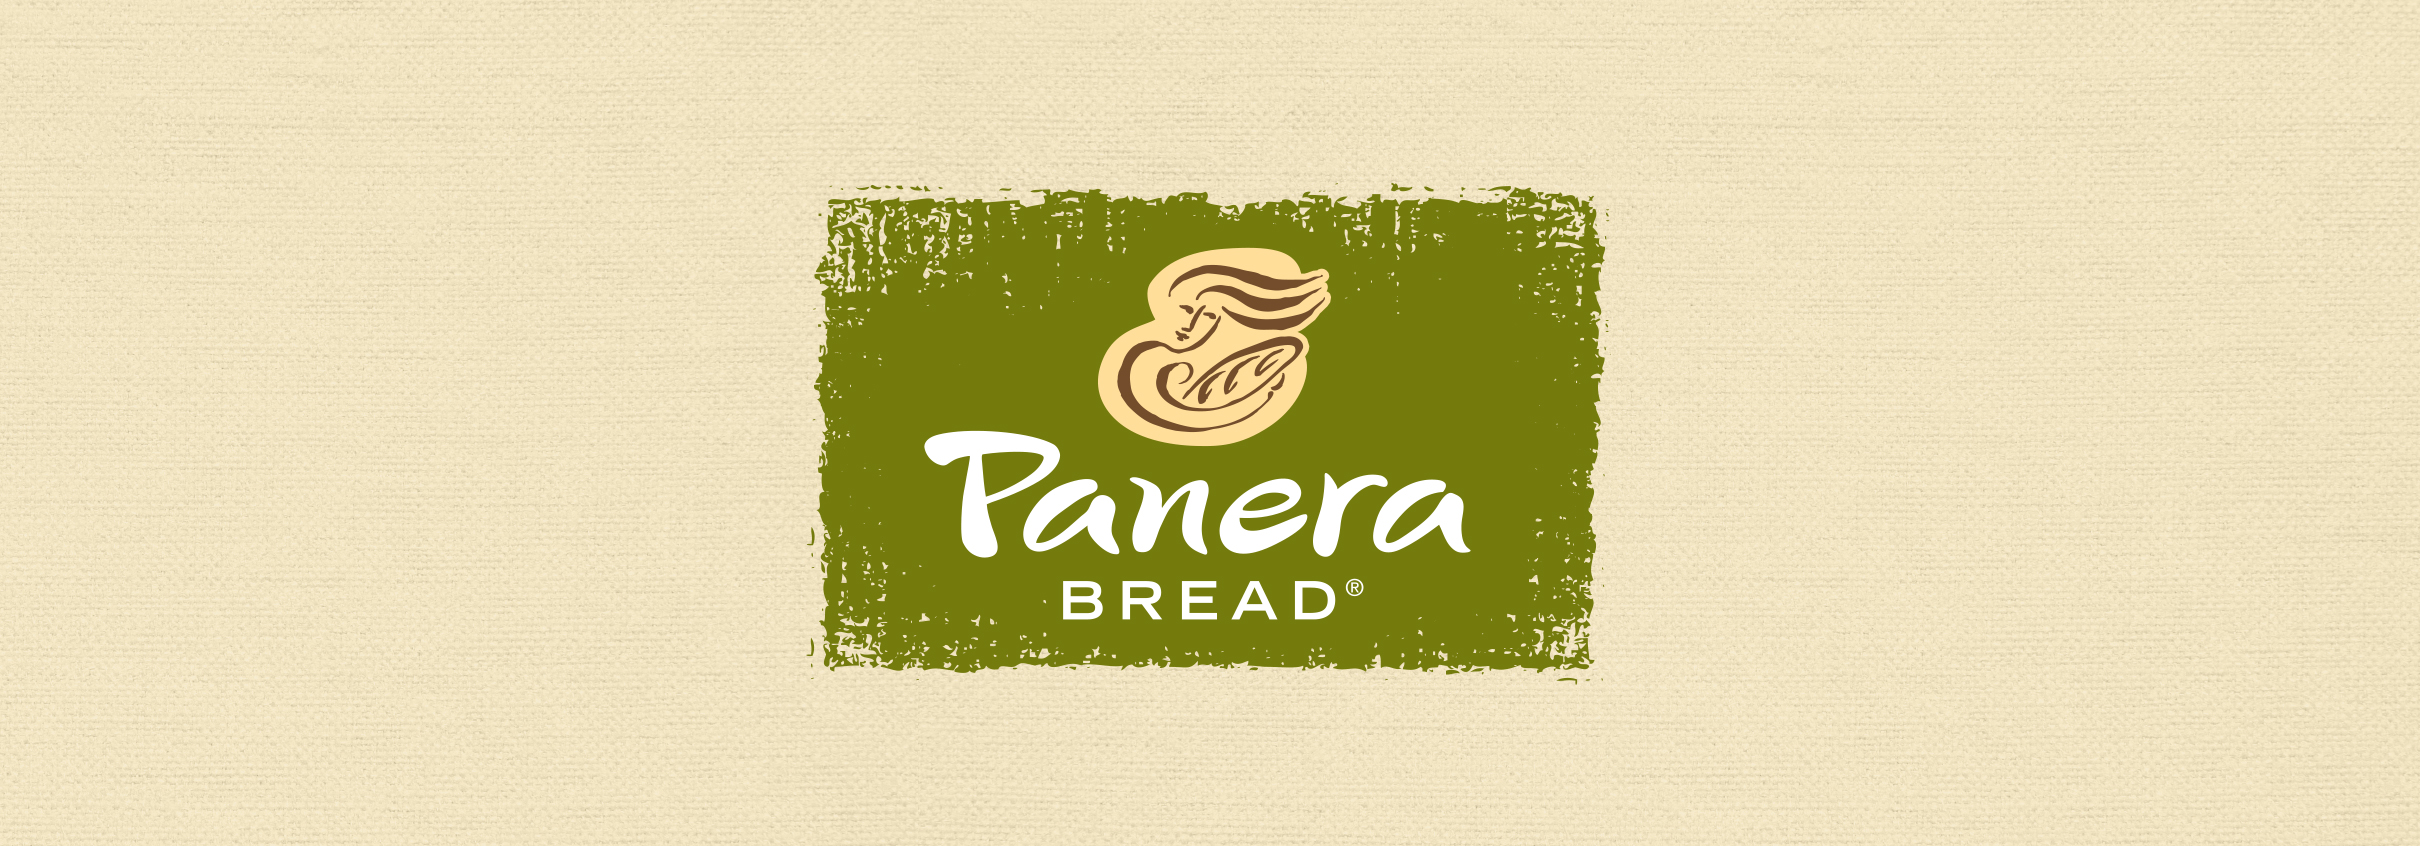 How Panera Bread's Brand Content Marketing Rises to the Top